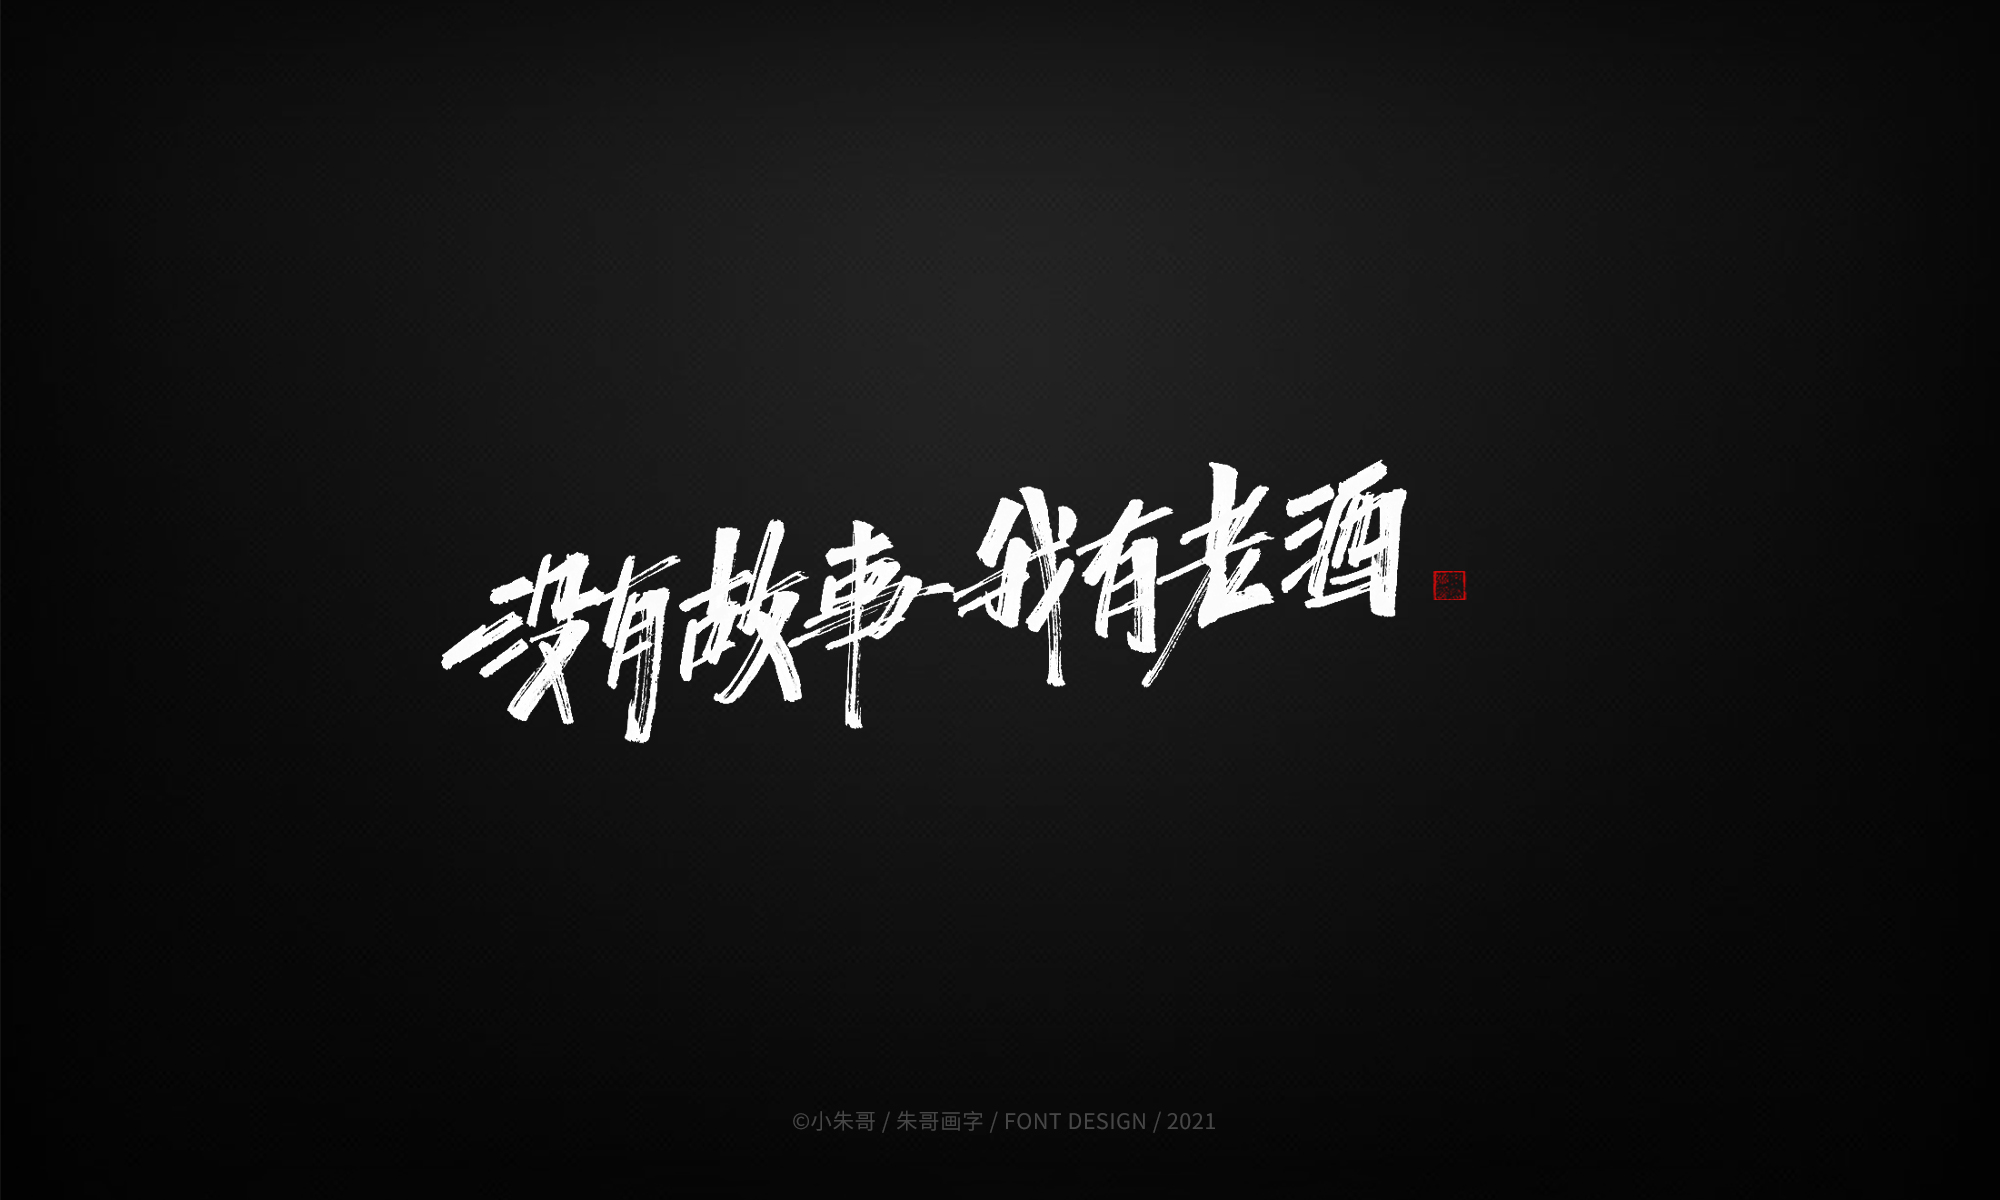 18P Collection of the latest Chinese font design schemes in 2021 #.142